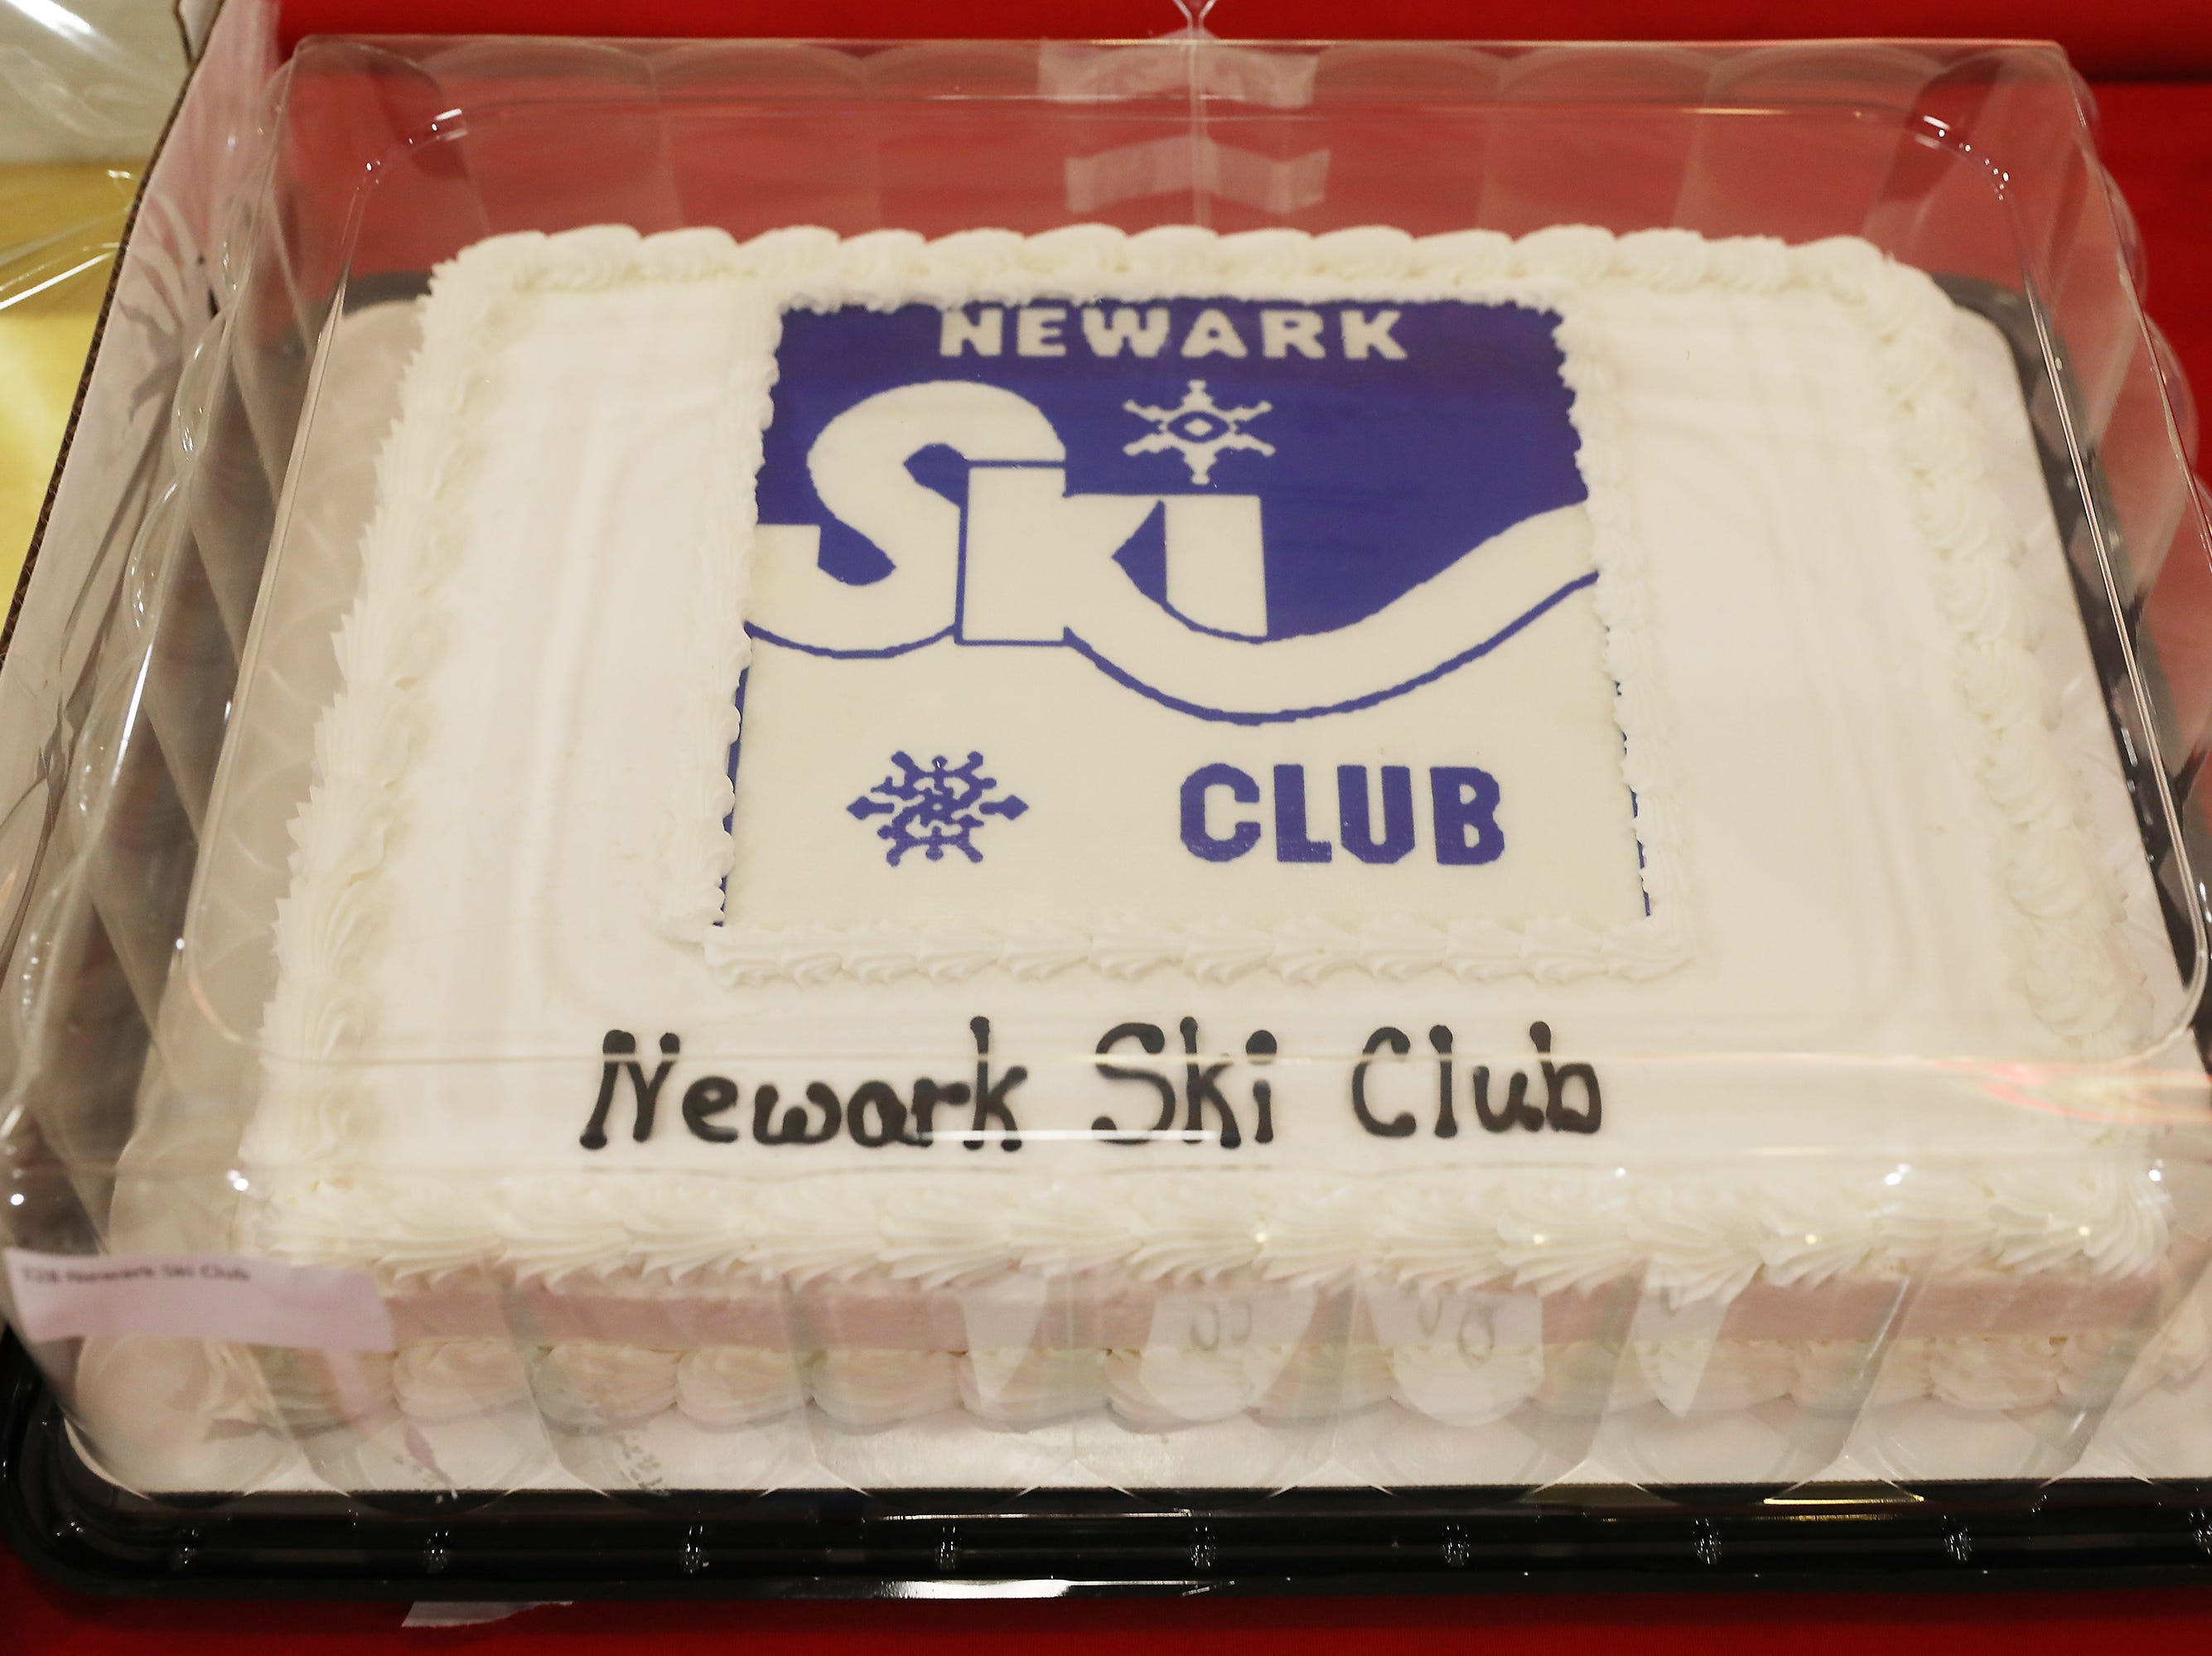 2 P.M. Friday cake 328 Newark Ski Club - 2 memberships, 6 sandwiches at Dickey's BBQ, 2 bags of Godiva Chocolate, red wine from Oliver Winery, 4 wine glasses; $142